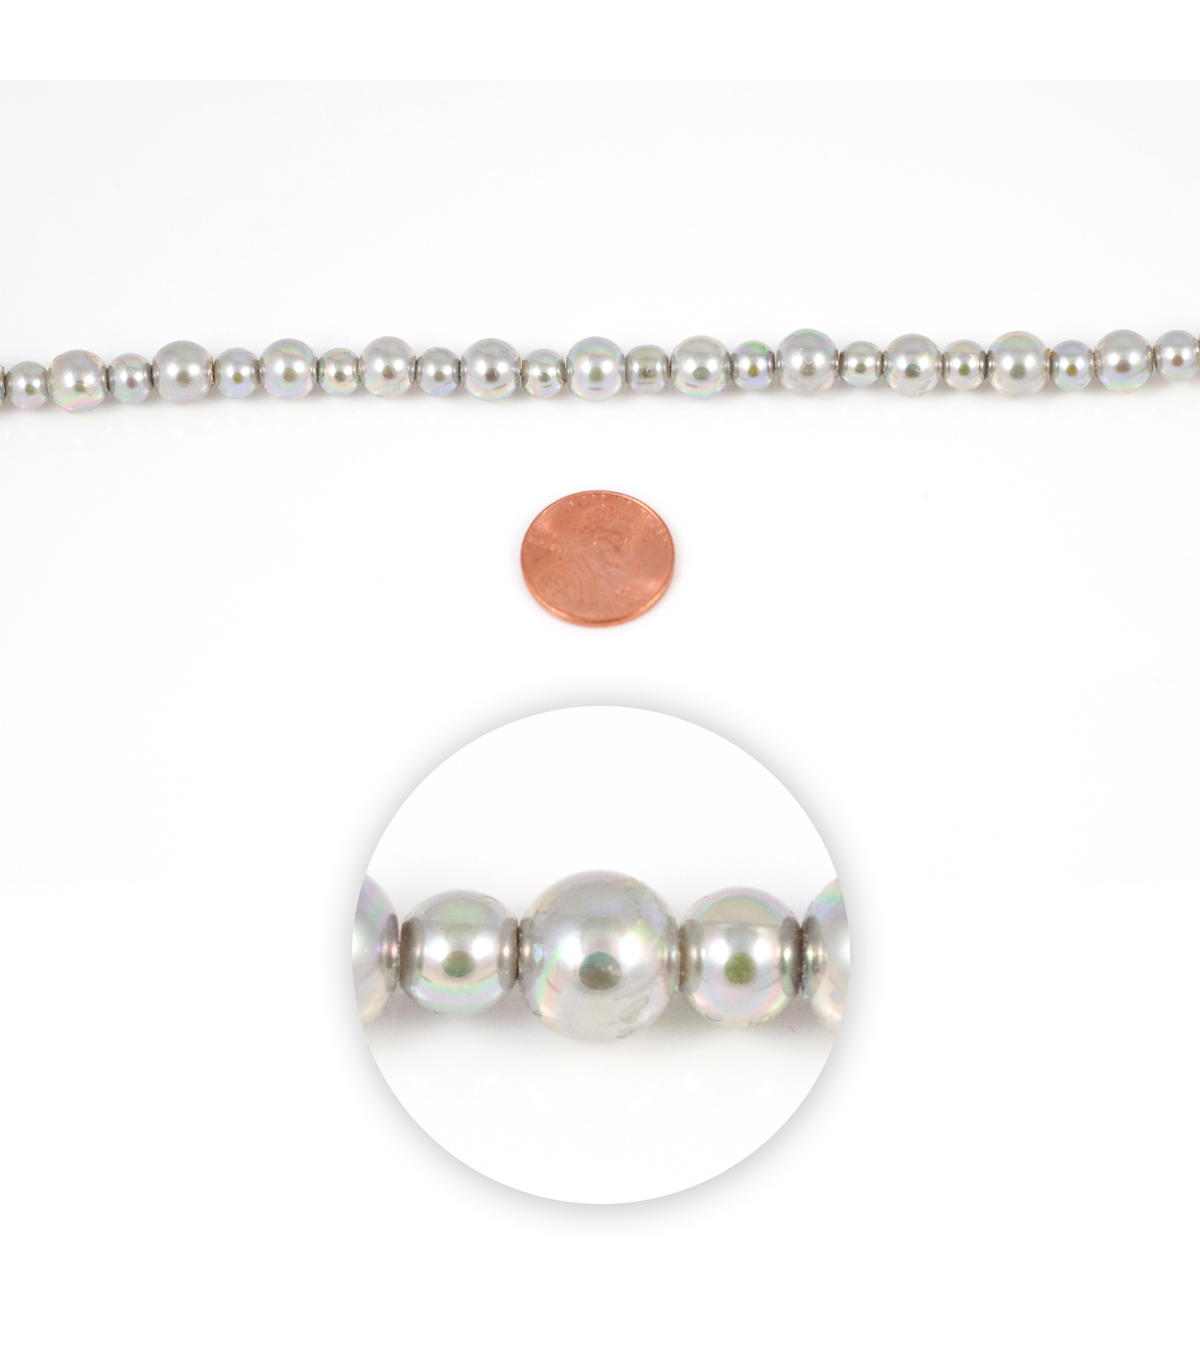 Blue Moon Strung Glass Pearl Beads,Round,Grey AB